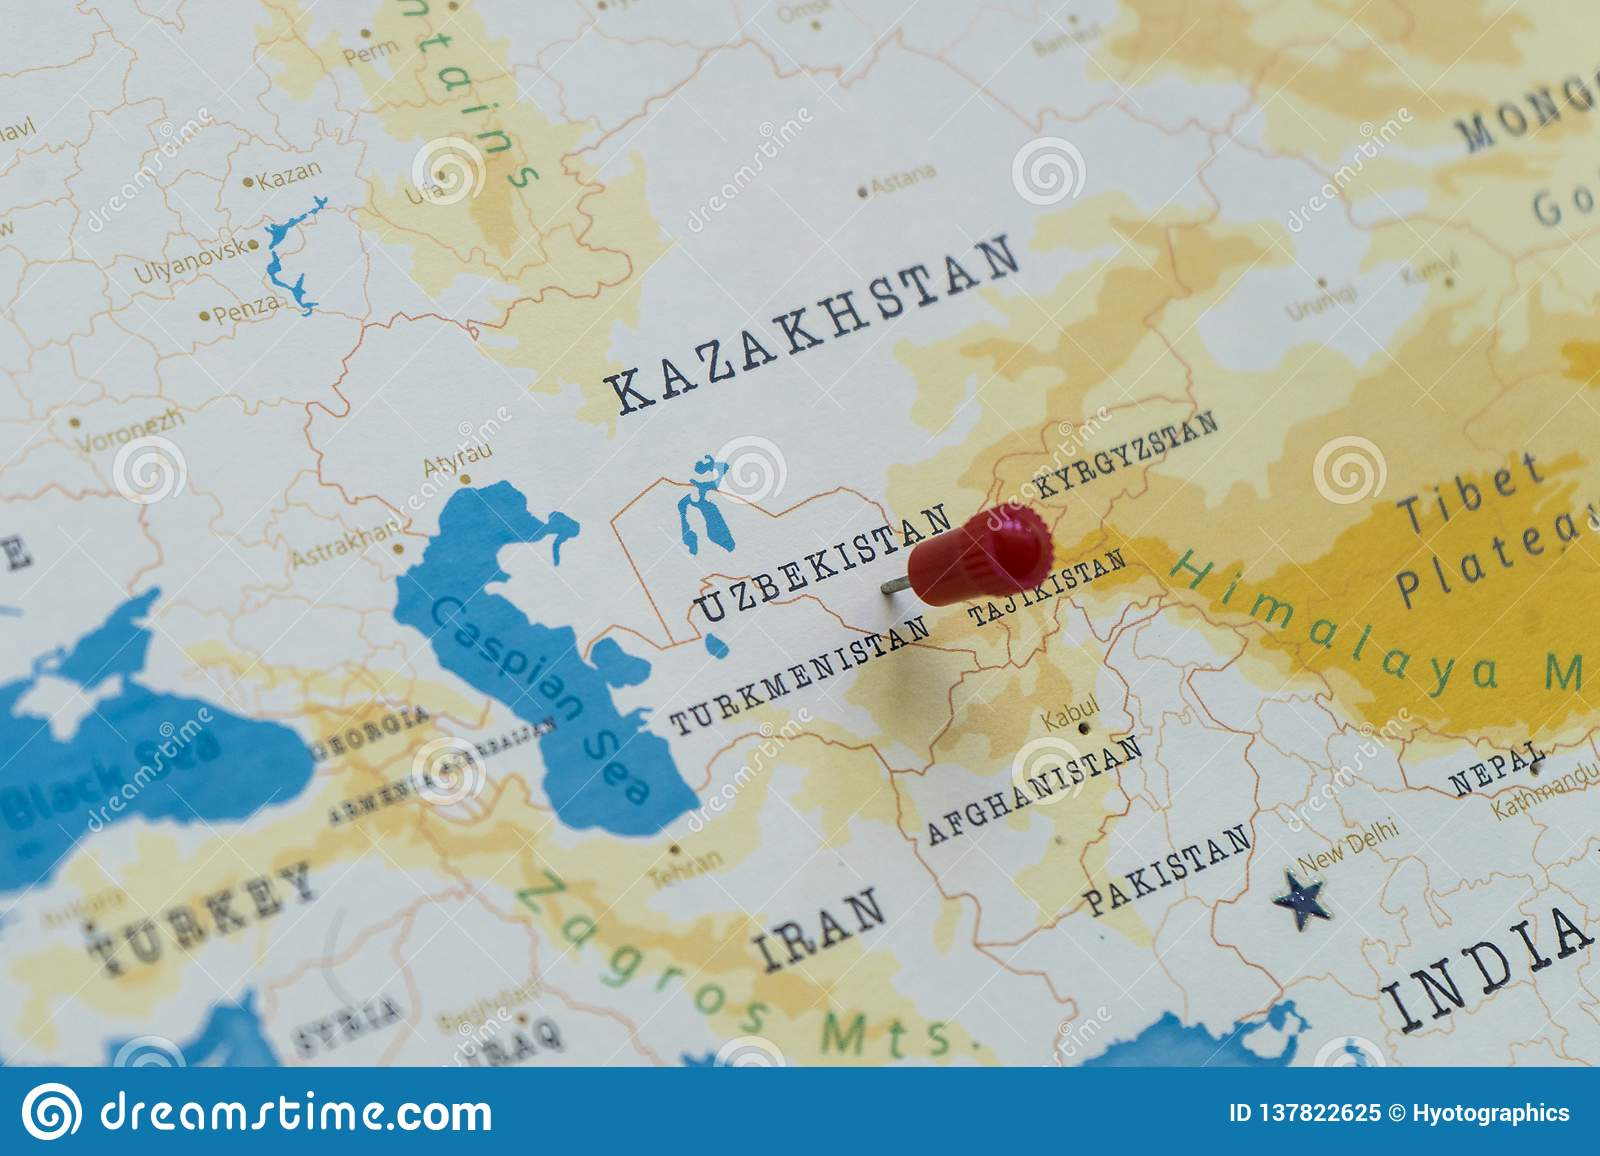 A Pin On Uzbekistan In The World Map Stock Image - Image of ...